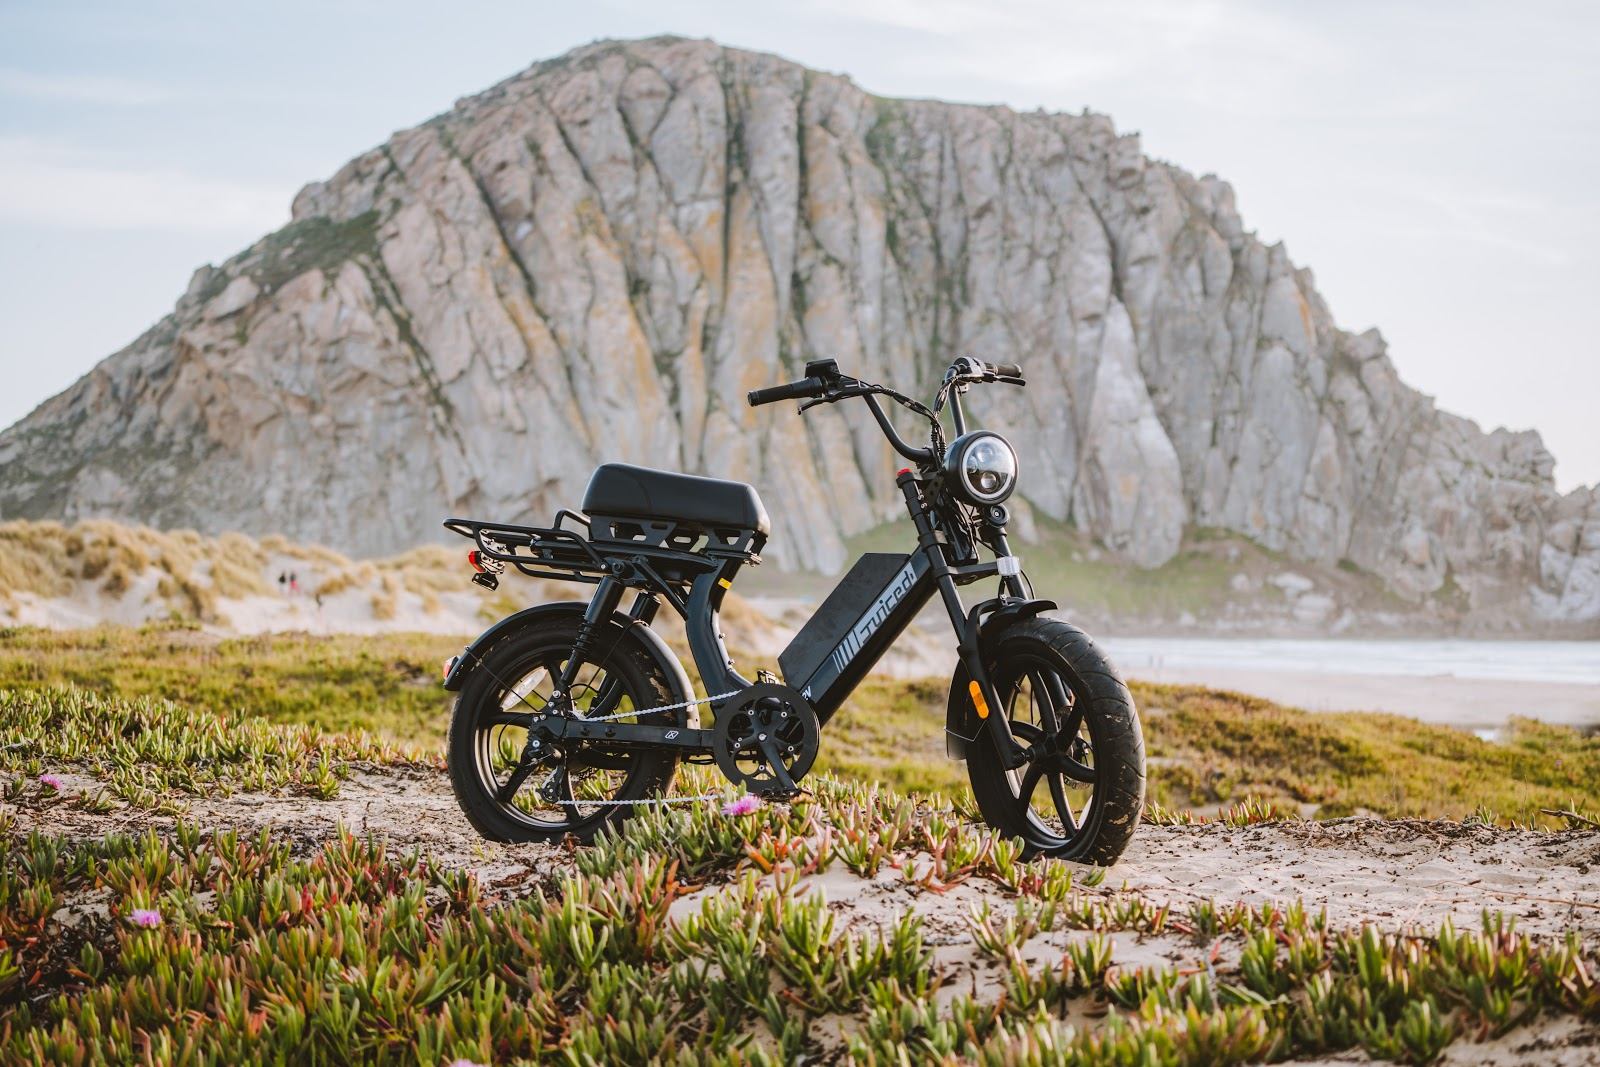 A capable cargo hauler for the city, or powerful off-road adventure ebike